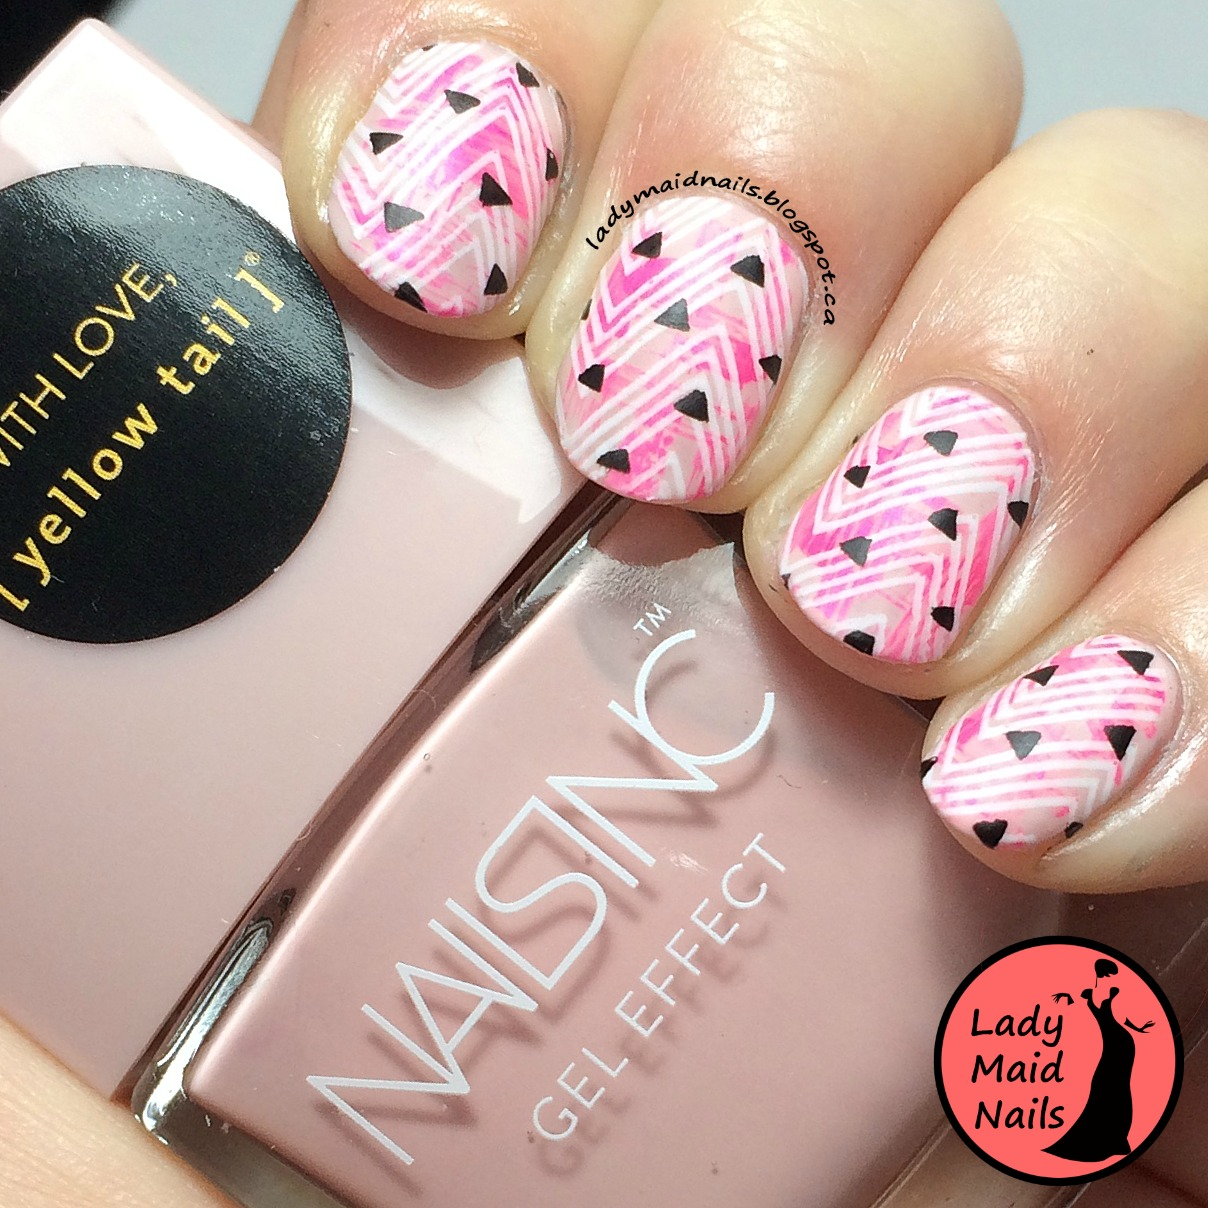 Lady Maid Nails: Neon Pink Nail Stamping, Yellow Tail Moscato